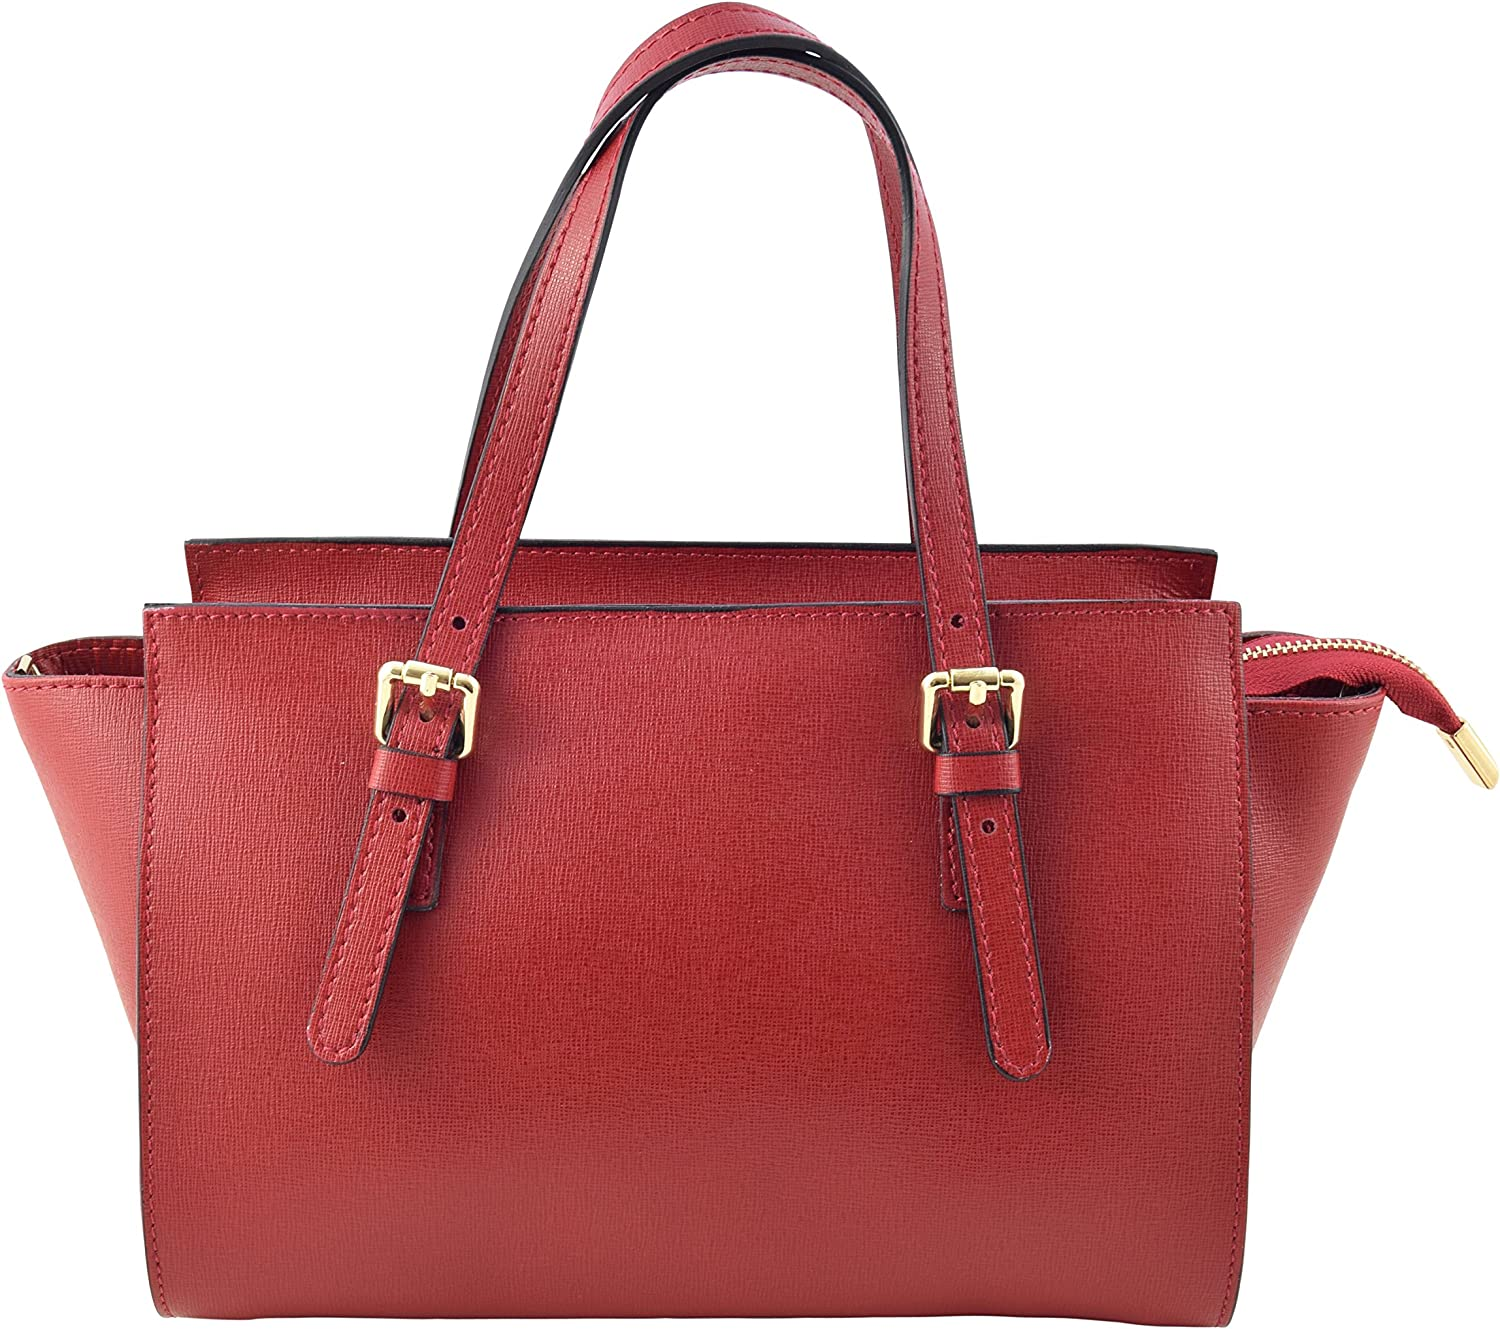 AMINA TopHandleHandbags Women's Bags Handcraft Genuine Leather Made in